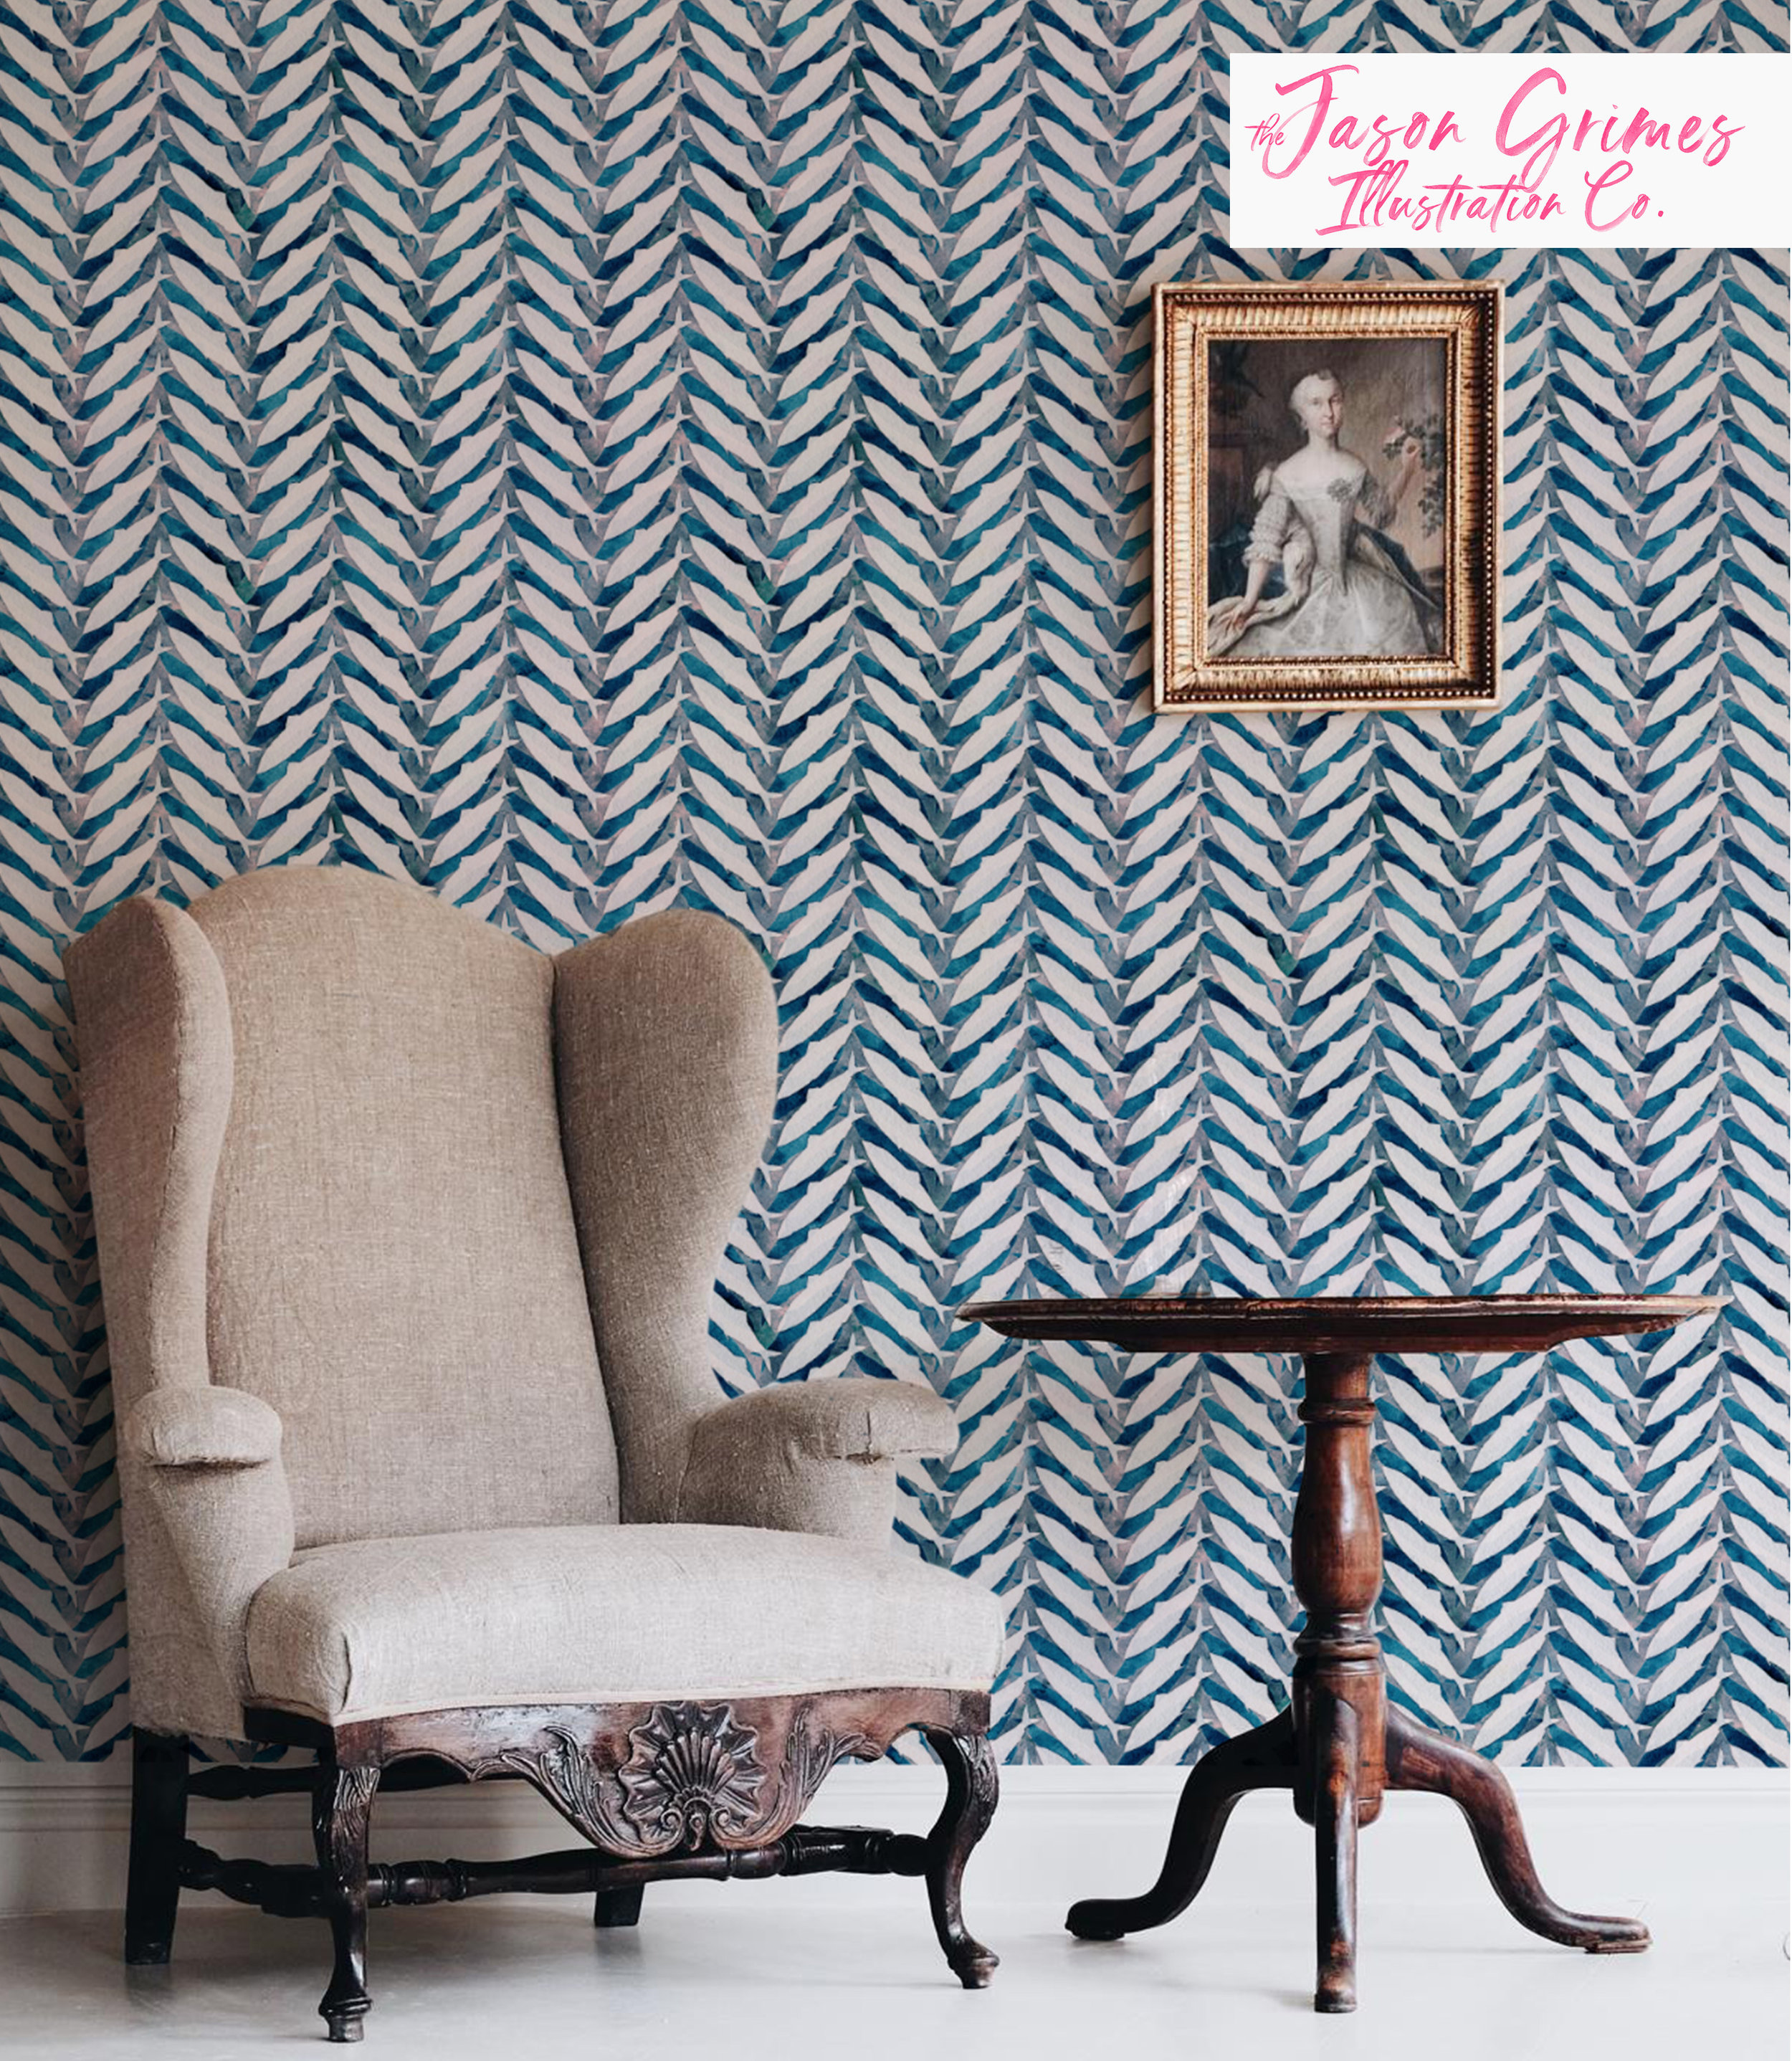 Herring Herringbone  available as wallpaper, fabric by the yard and wrapping paper through Spoonflower.